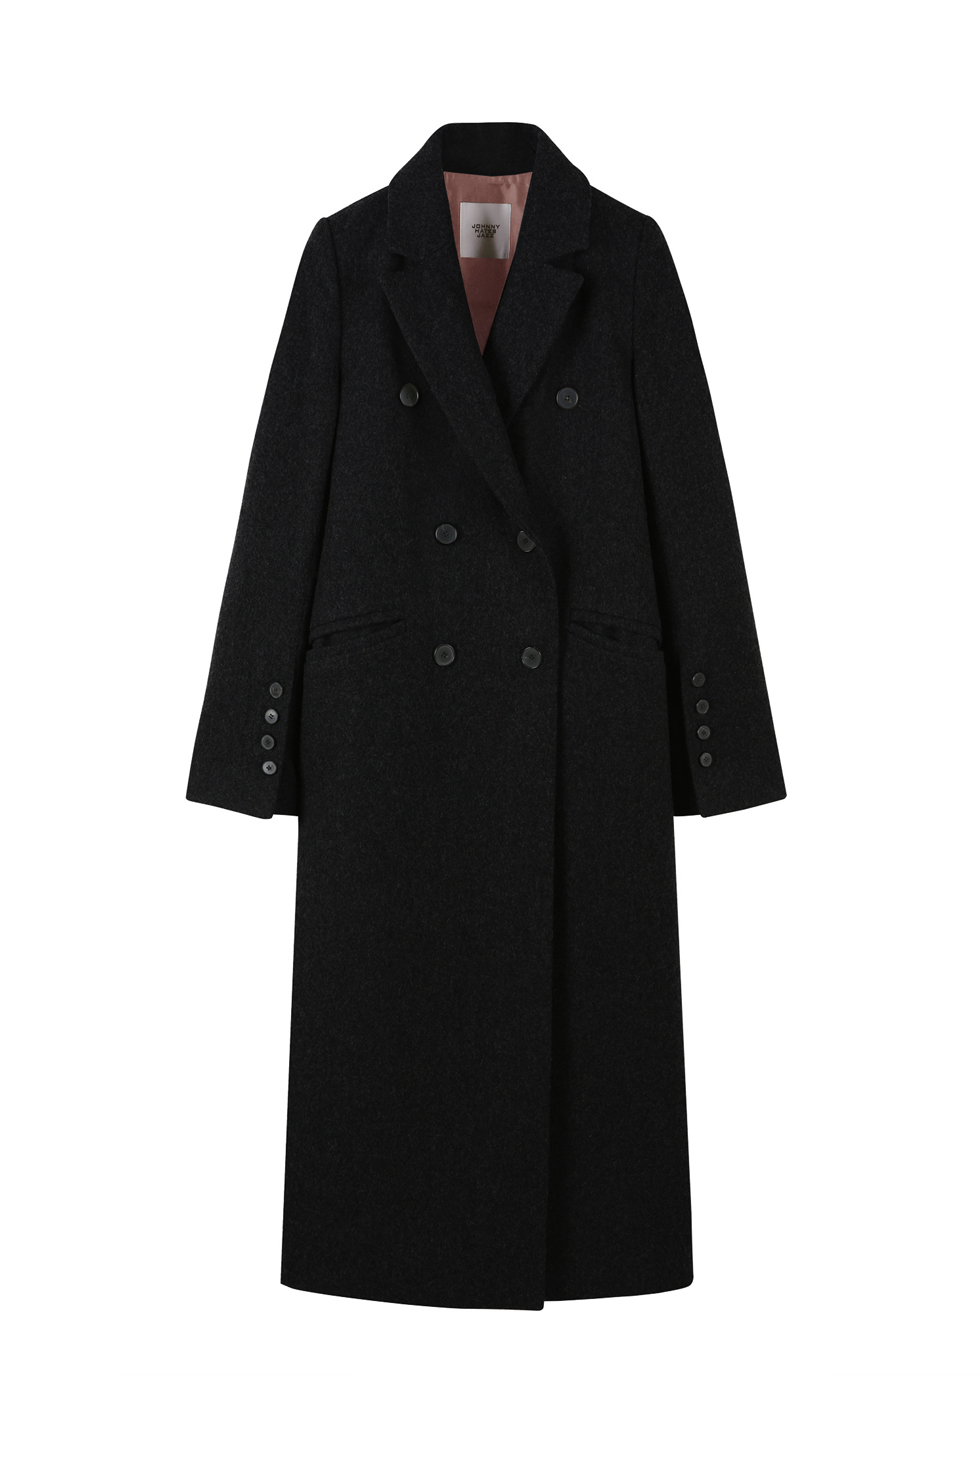 TAILORED WOOL LONG COAT - BLACK